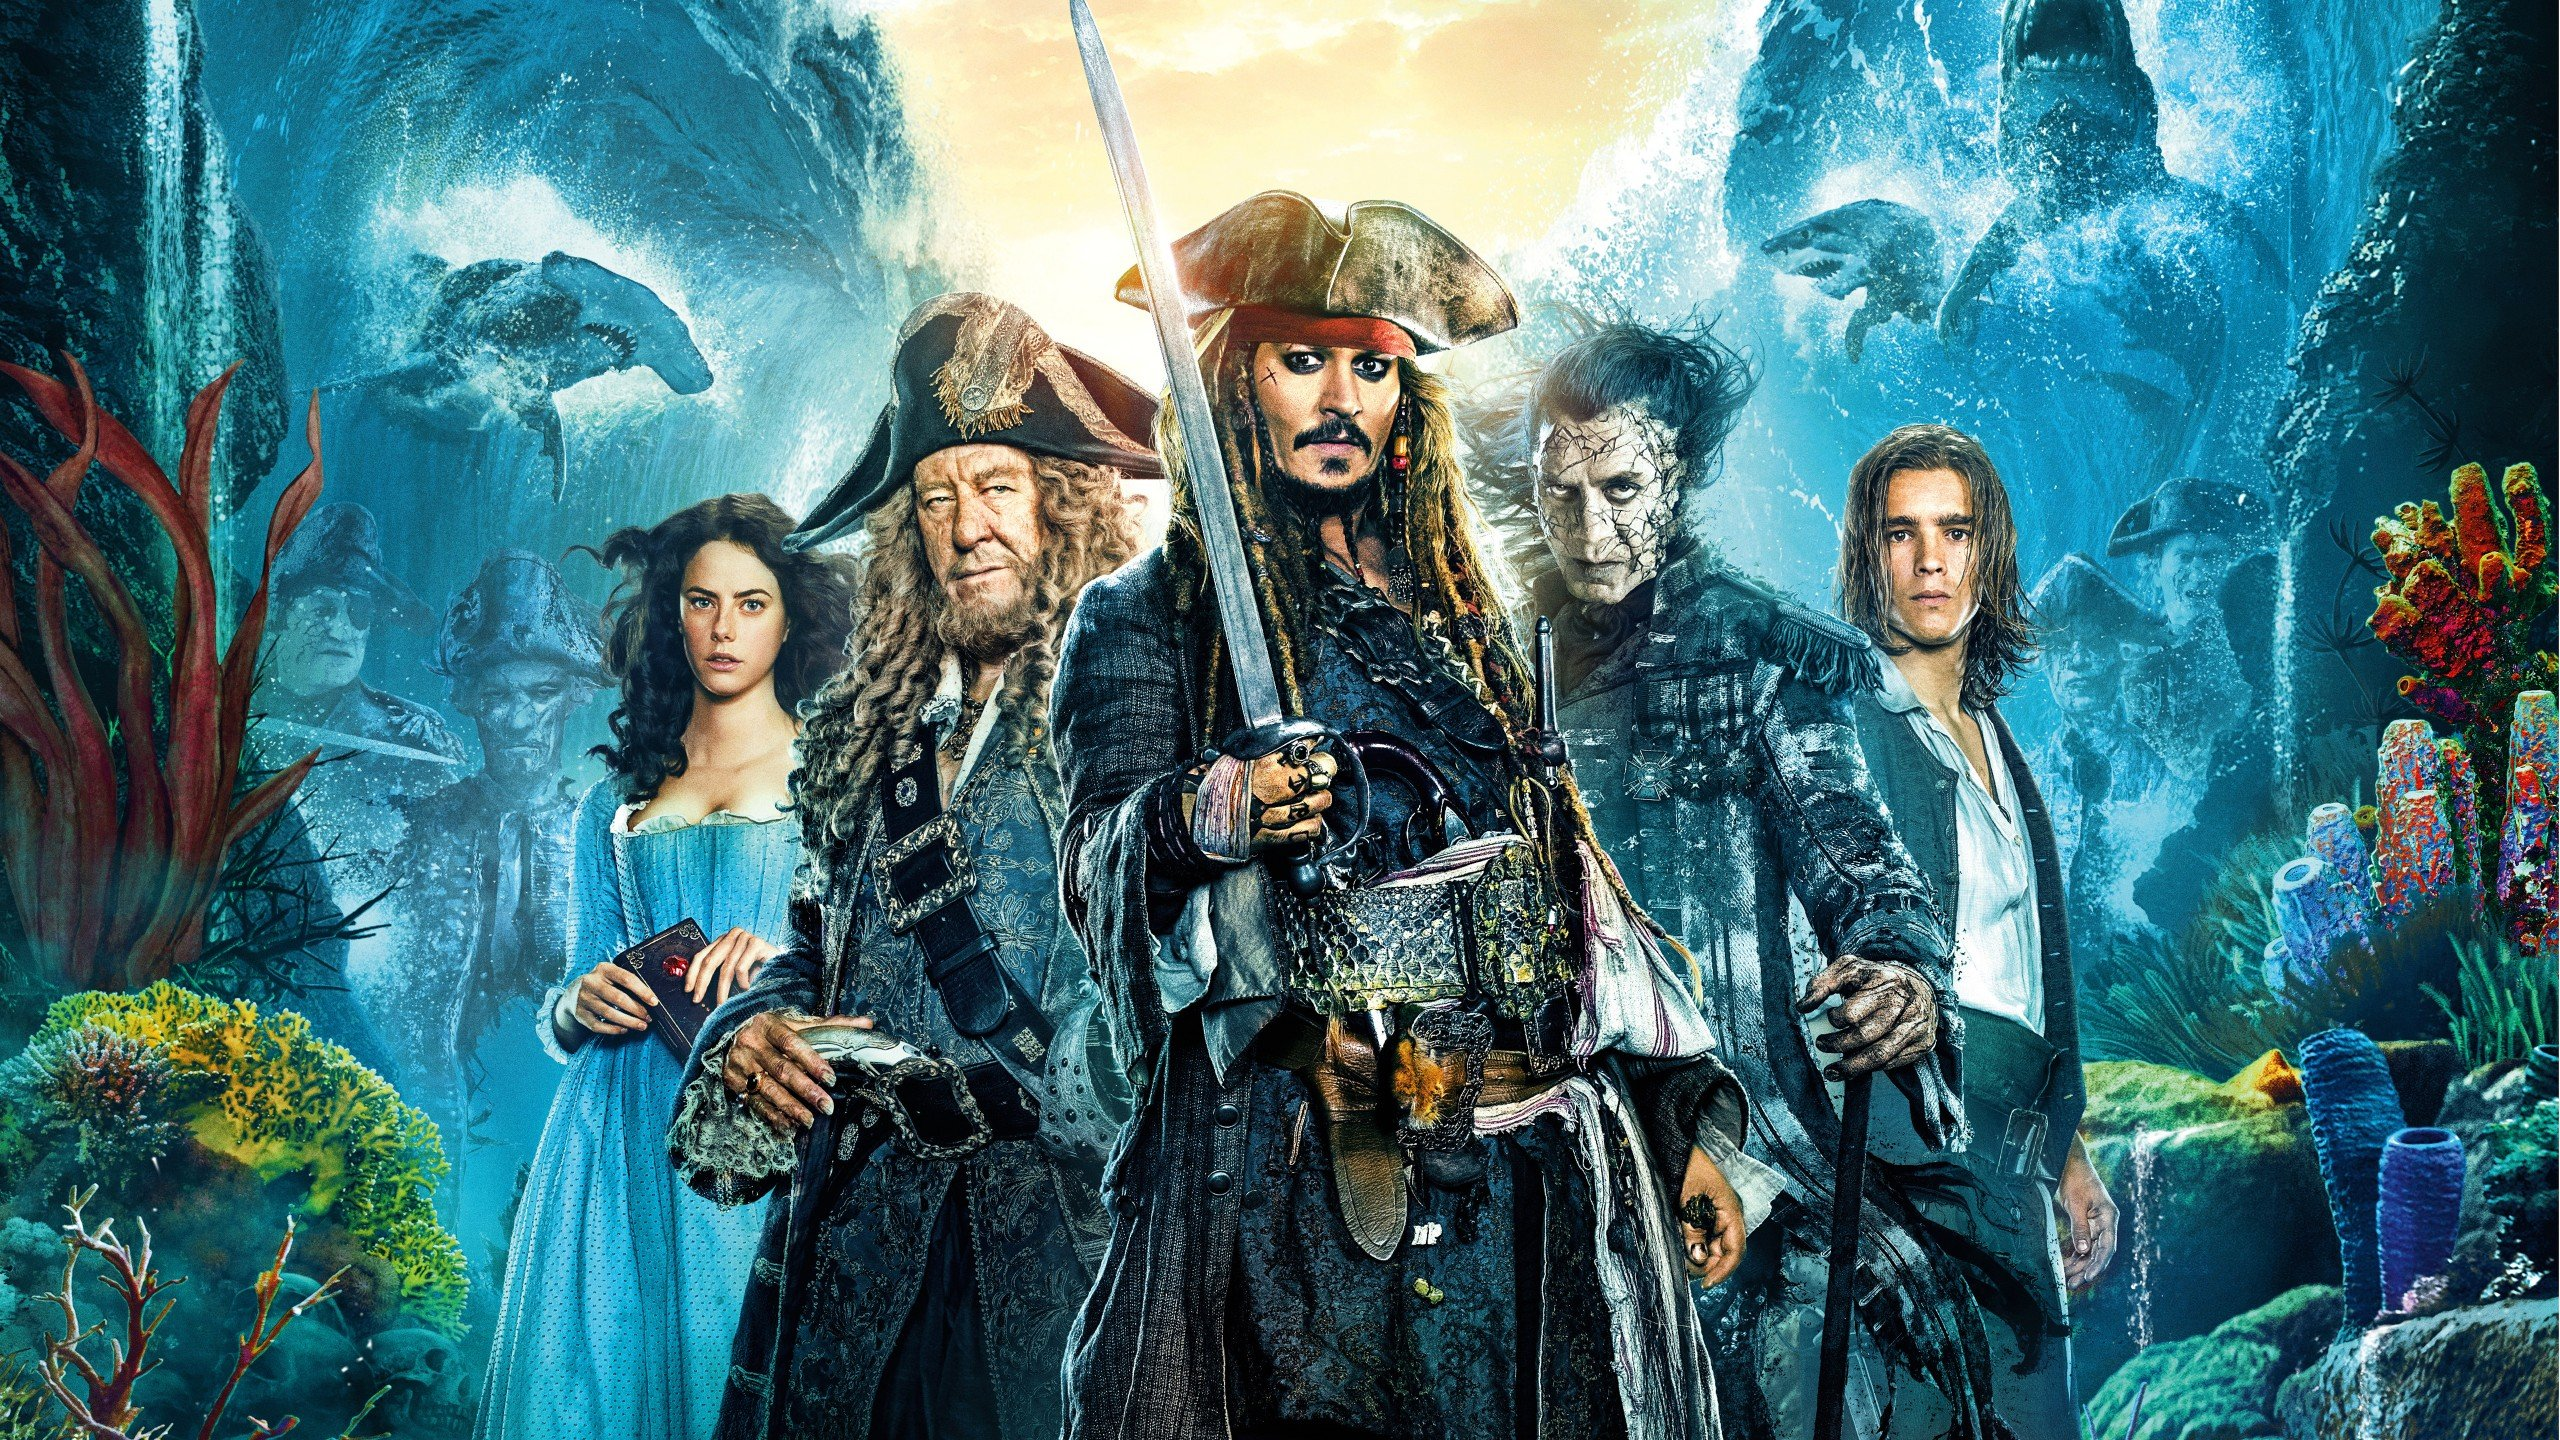 Pirates Of The Caribbean Desktop Wallpaper Posted By Samantha Anderson